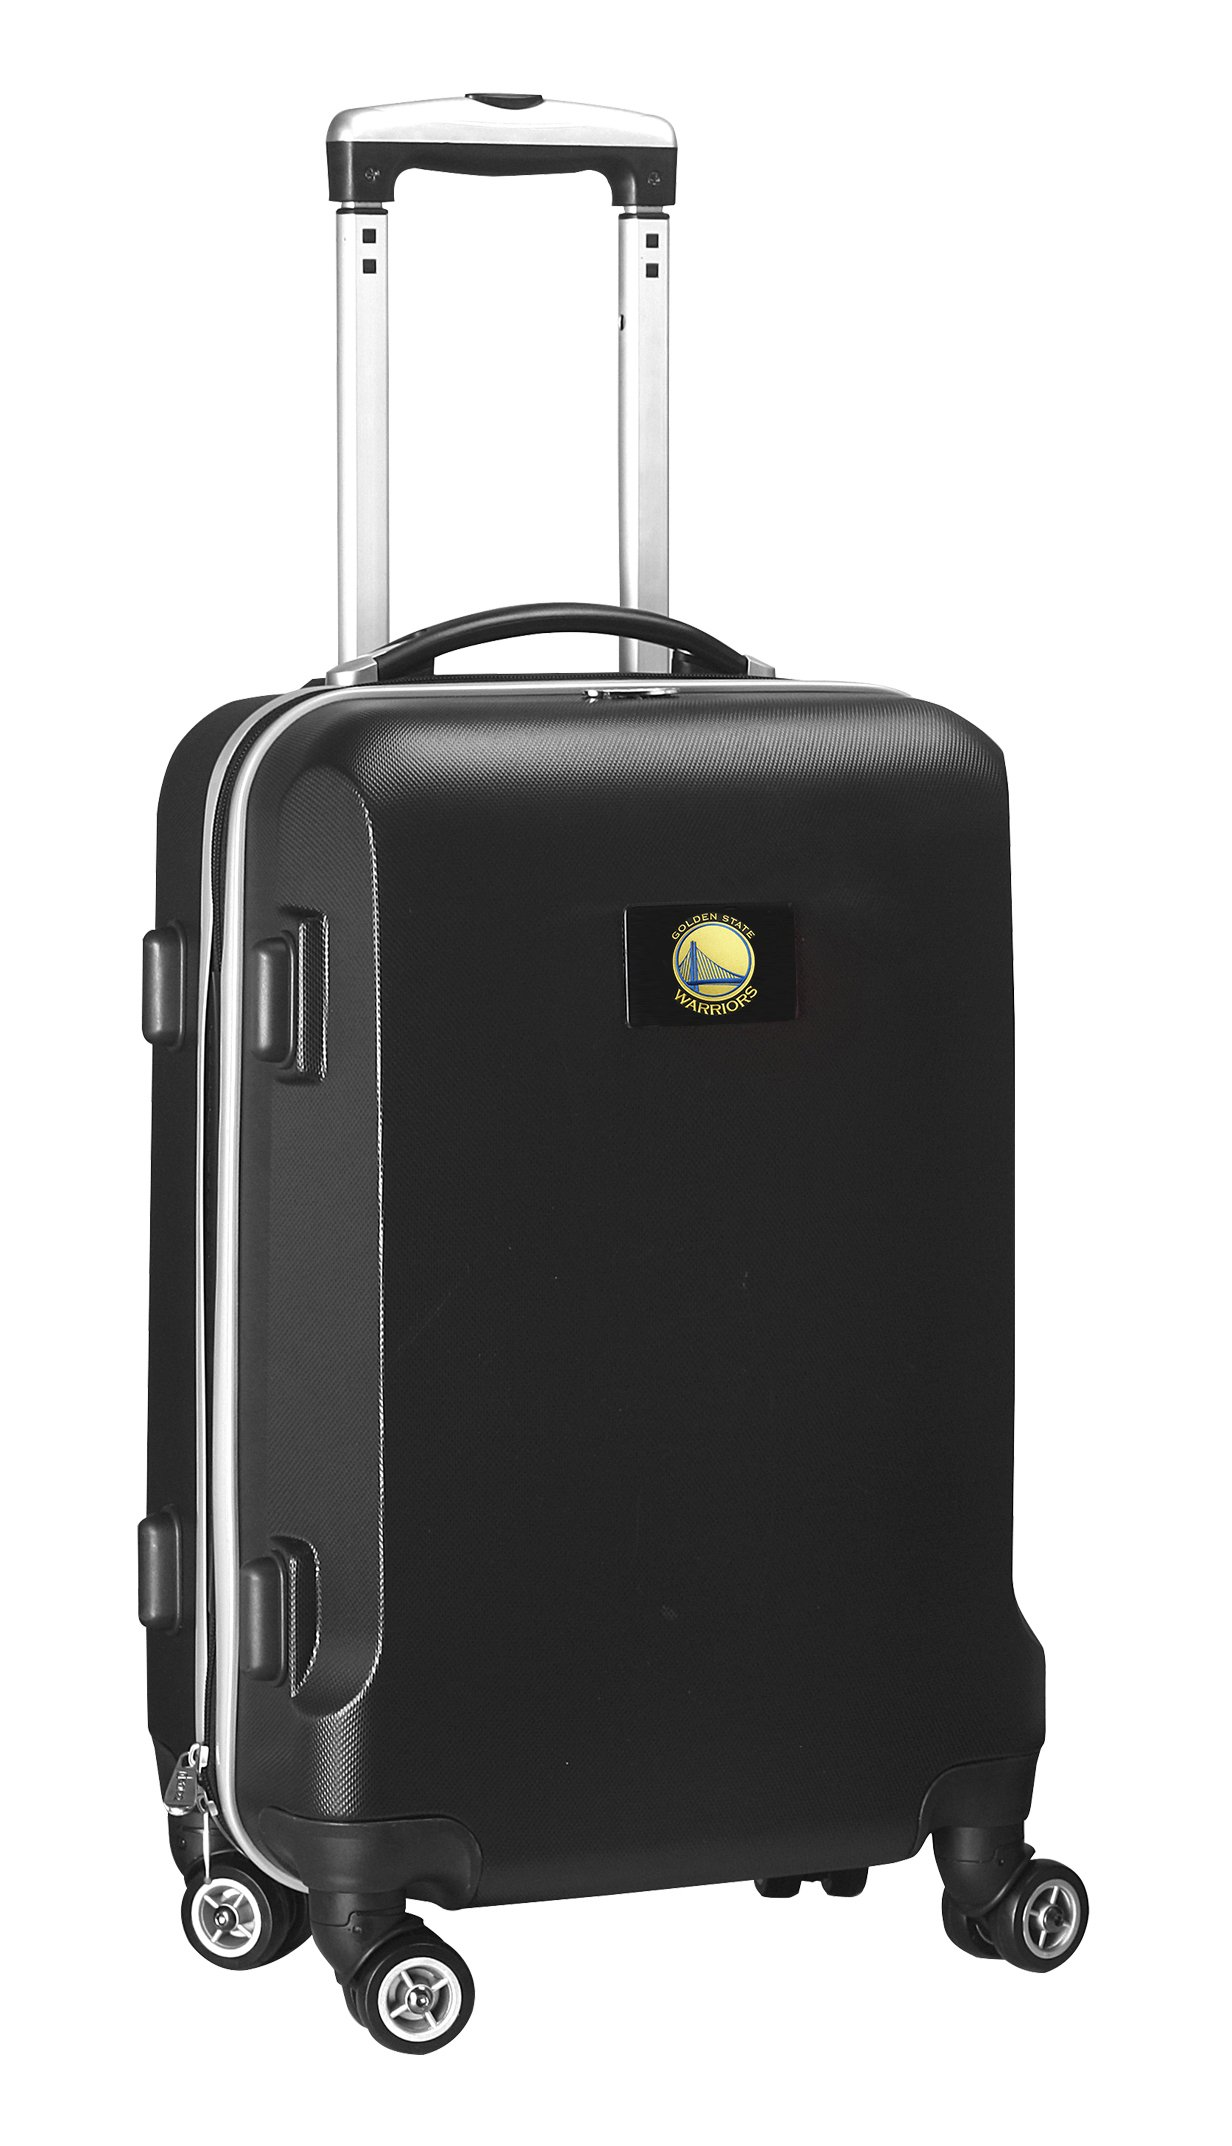 Denco NBA Golden State Warriors Carry-On Hardcase Luggage Spinner, Black by Denco (Image #1)